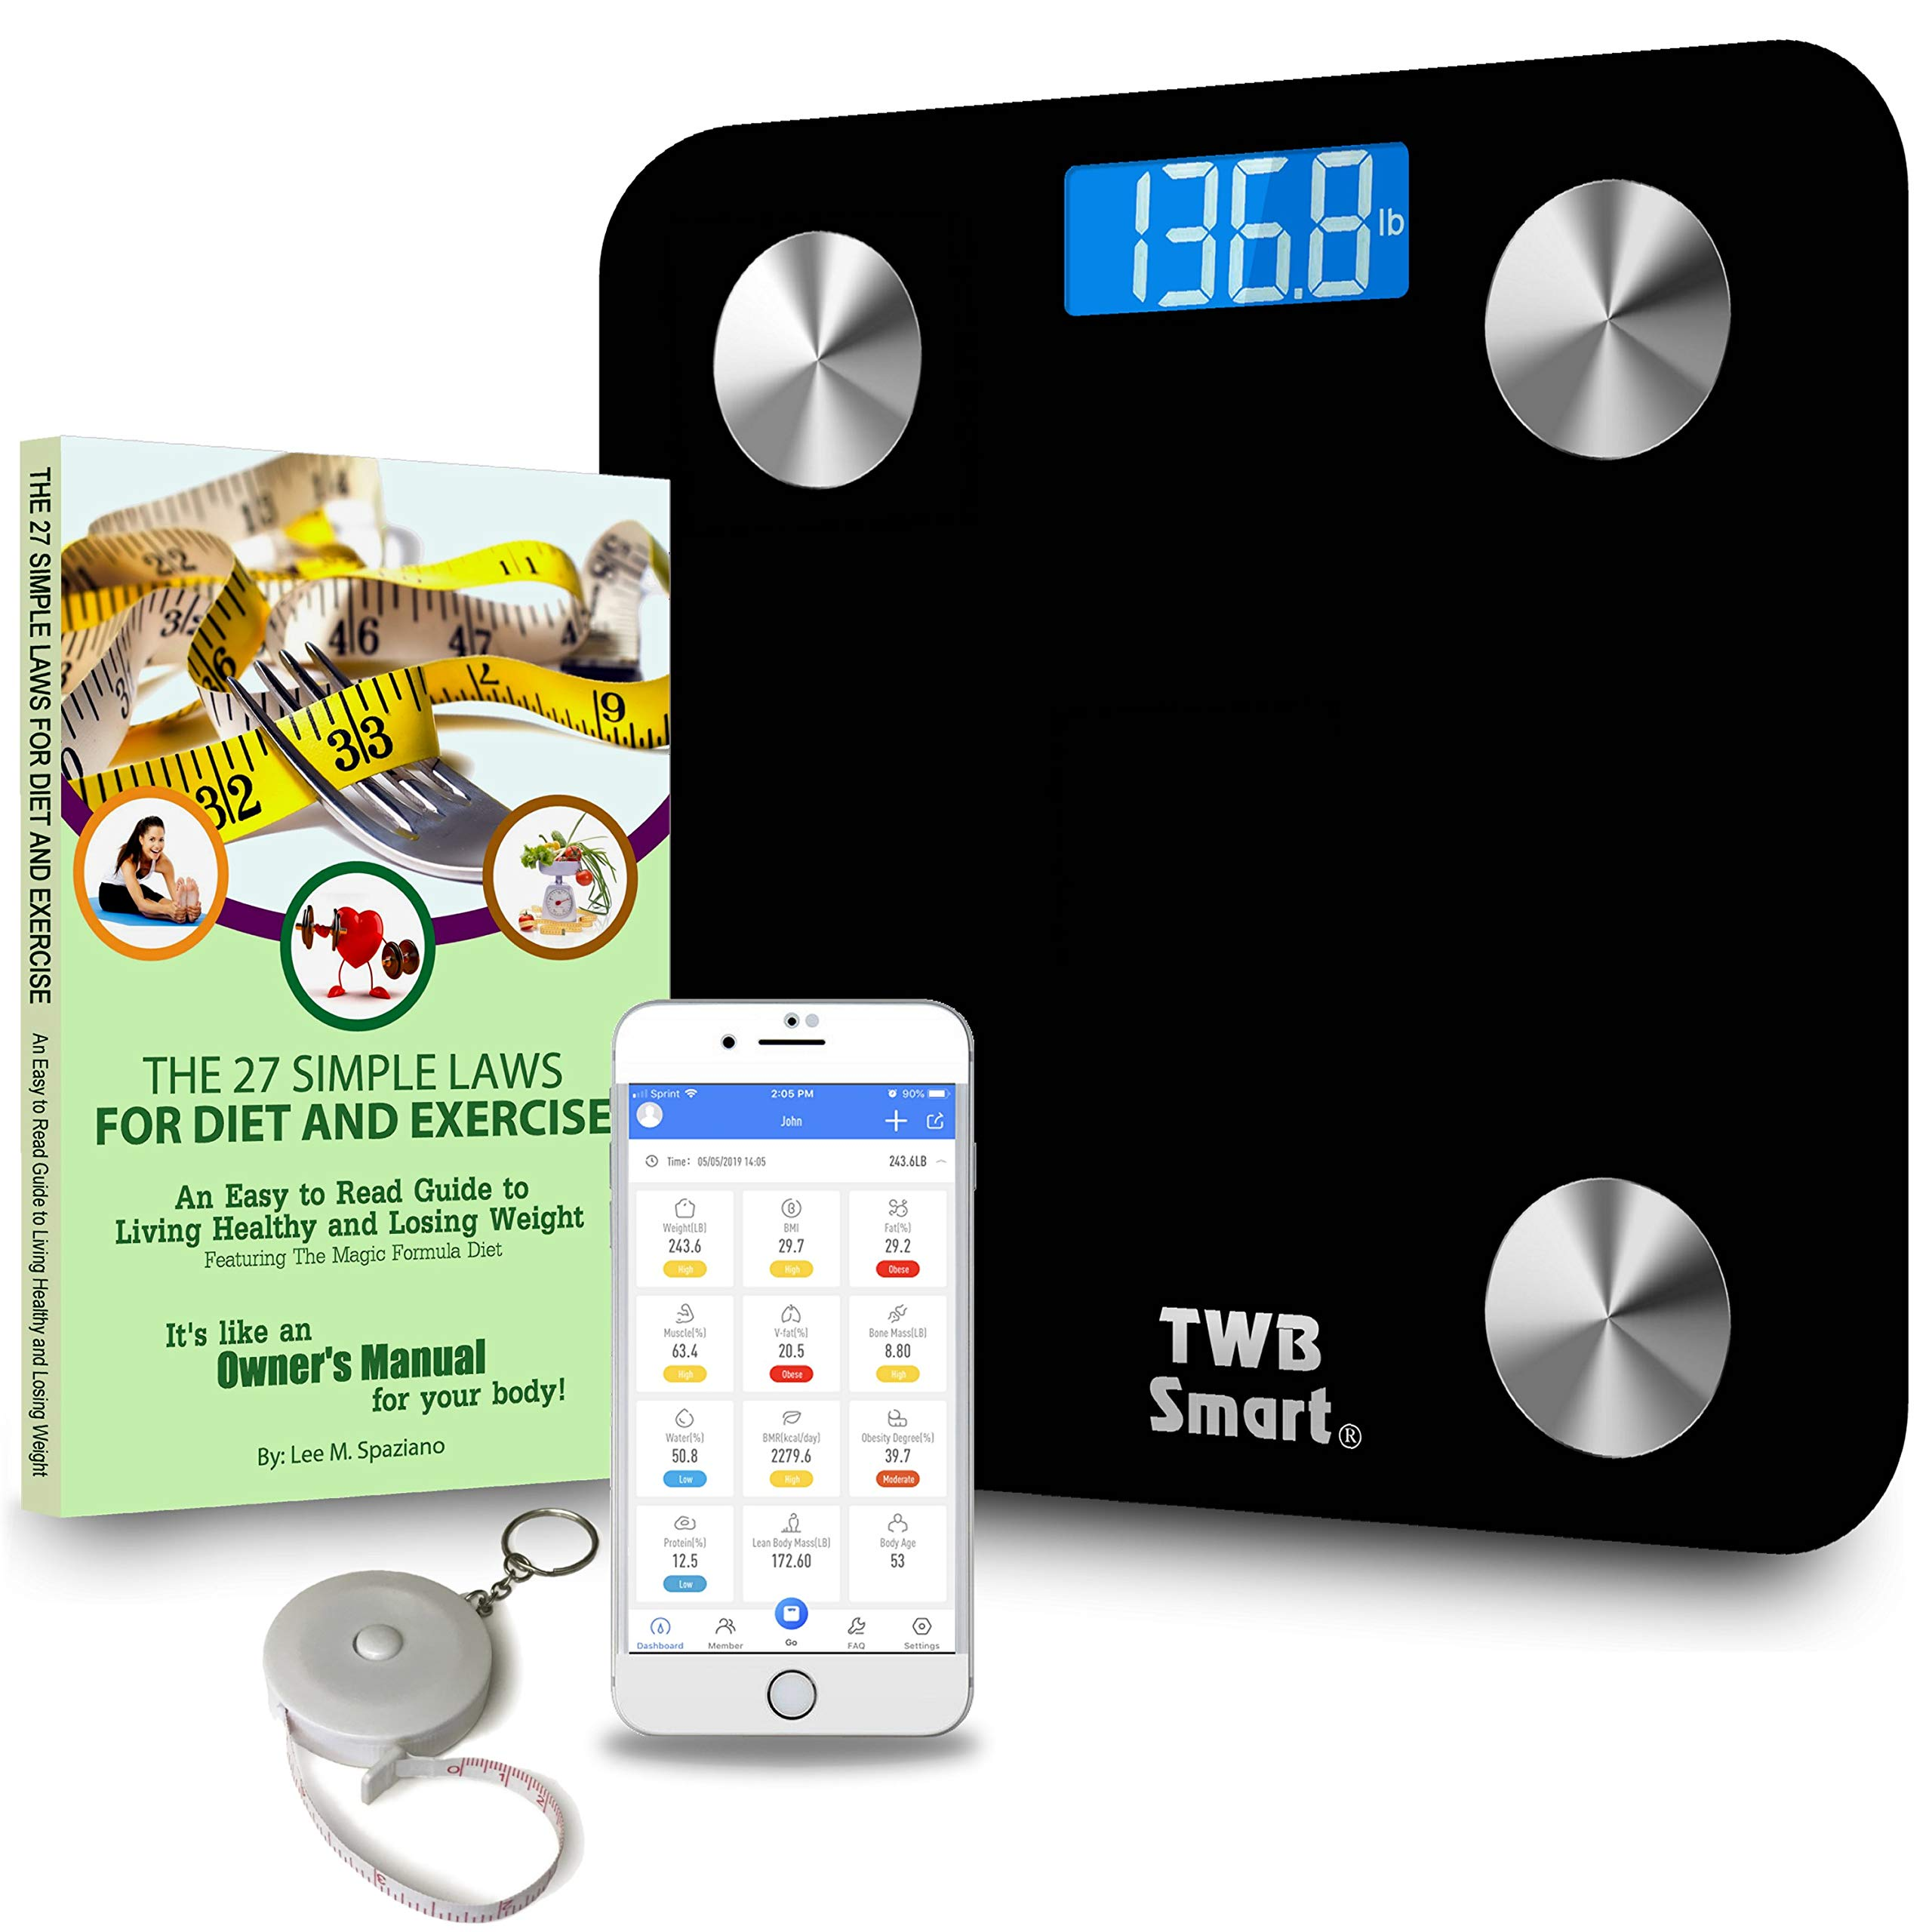 TWB Smart Bluetooth Scale Deluxe Gift Set - Large Digital Display Tracks BMI, Body Fat, Muscle & More. Includes Free App, Paperback Book: 27 Simple Laws for Diet and Exercise, and Bonus Tape Measure